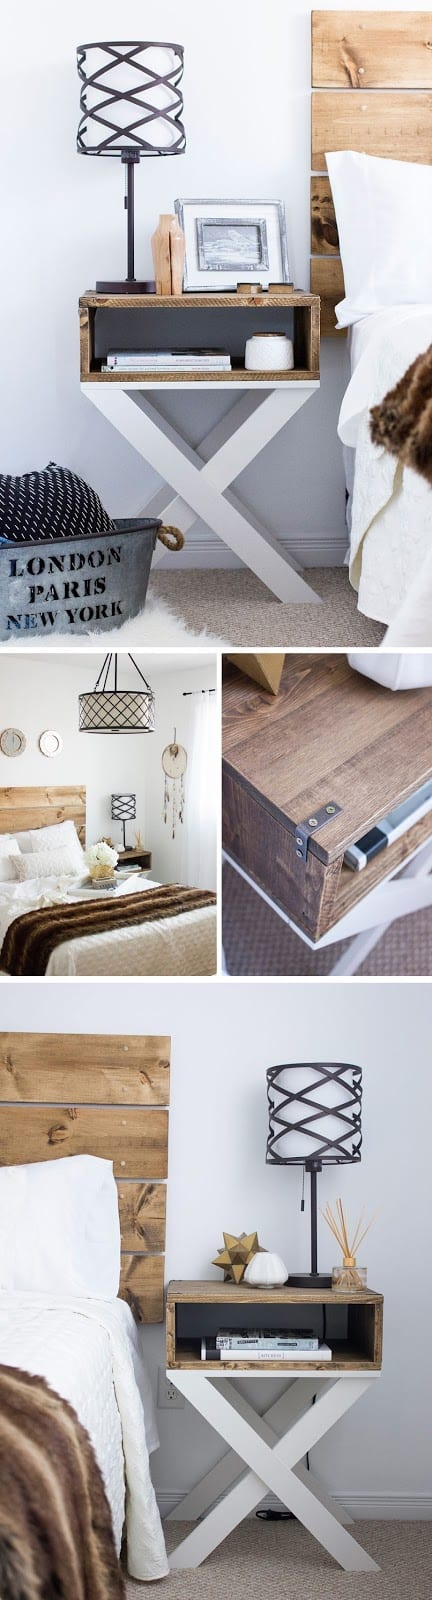 14. DESIGN BRILLIANCE - X DIY NIGHTSTAND